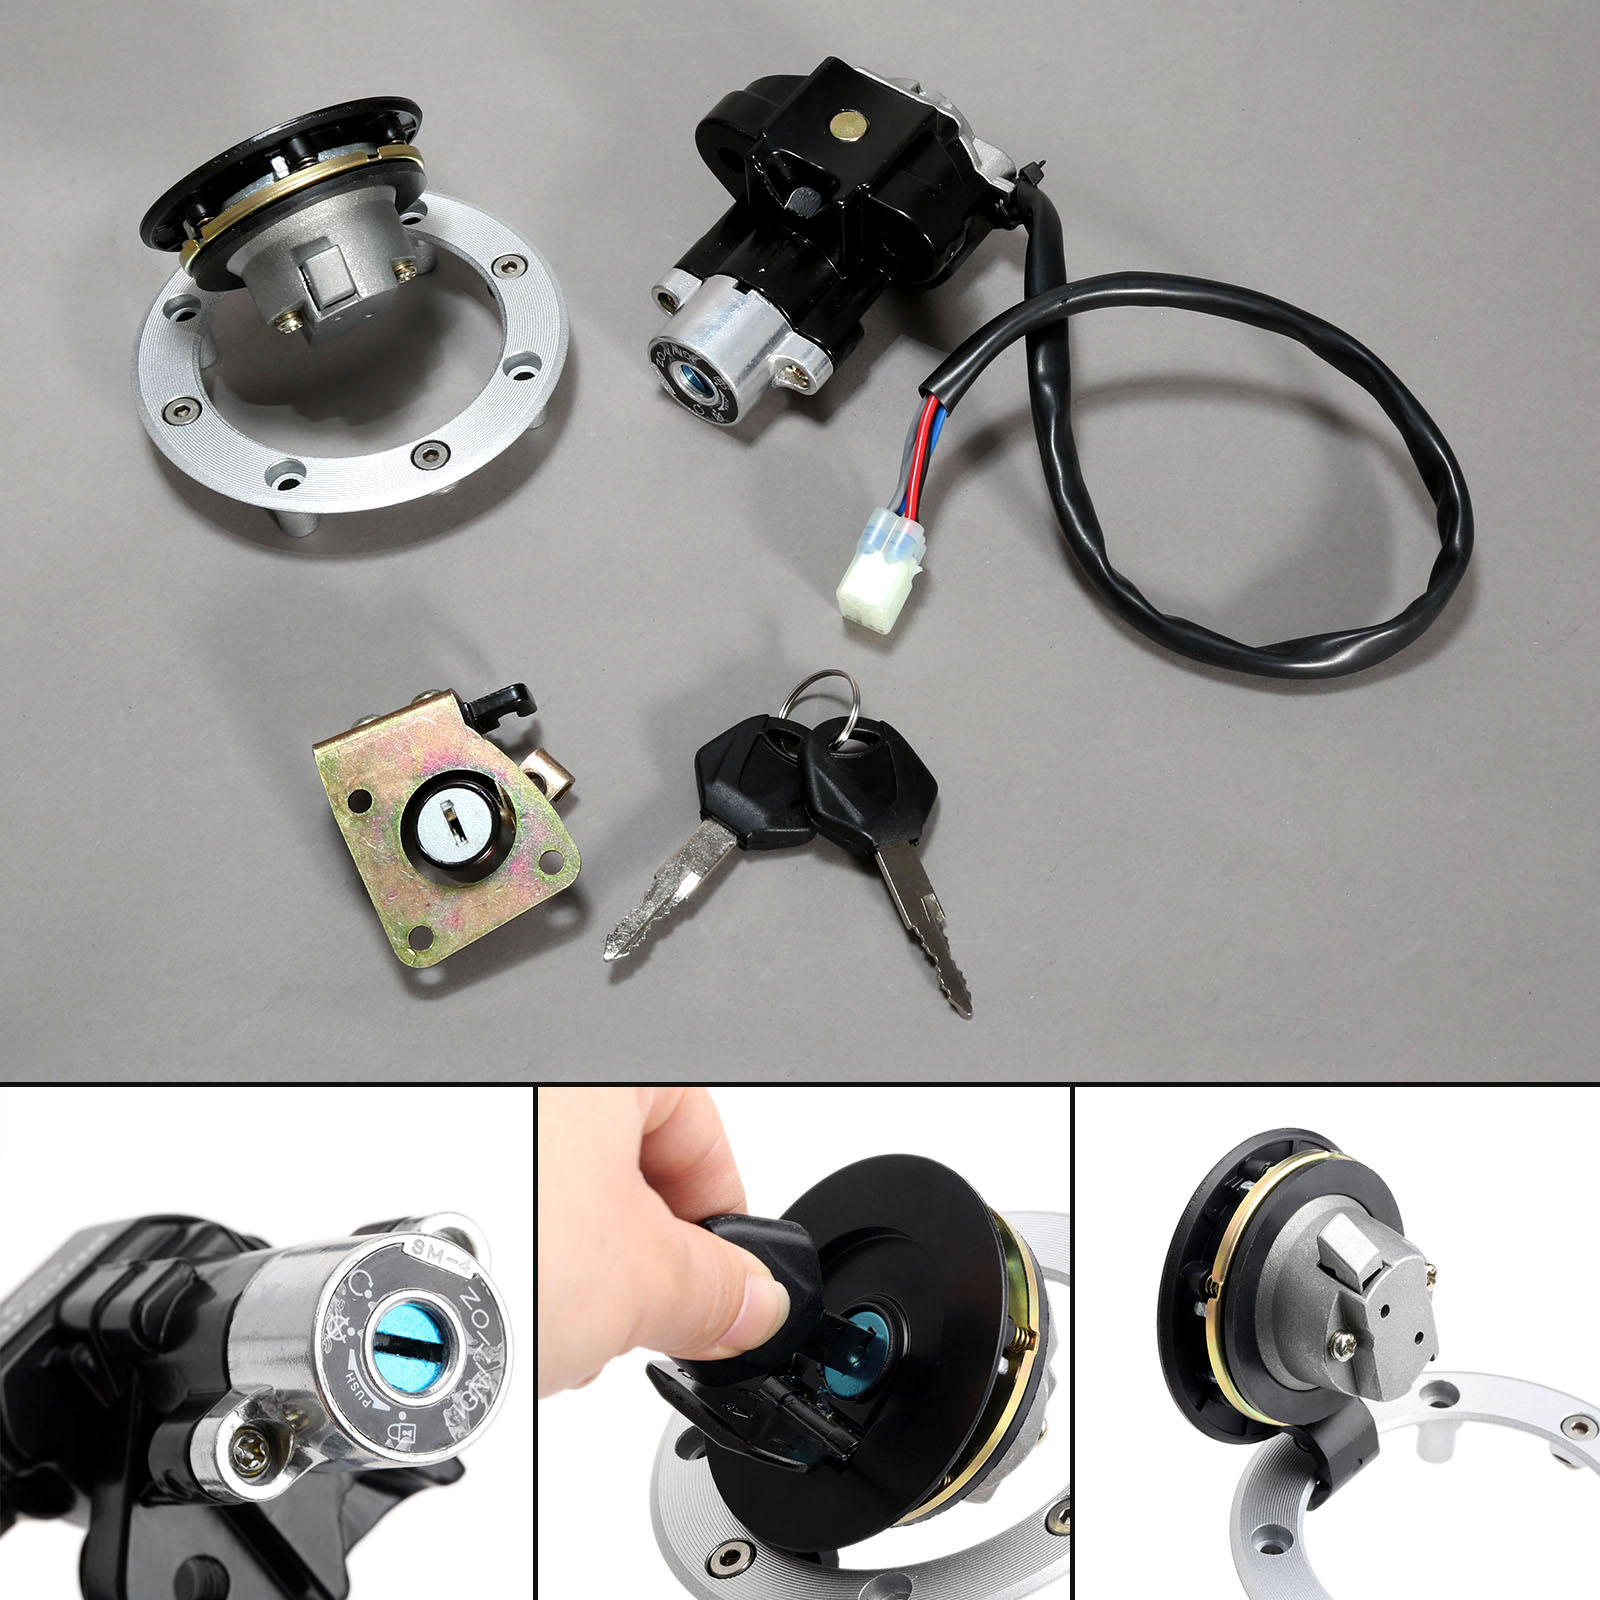 Motorcycle Ignition Switch Kit Assembly Fuel Gas Cap Tank Cover Seat Lock Key Set For Suzuki GSX600 GSXR750 TL1000R TL1000S